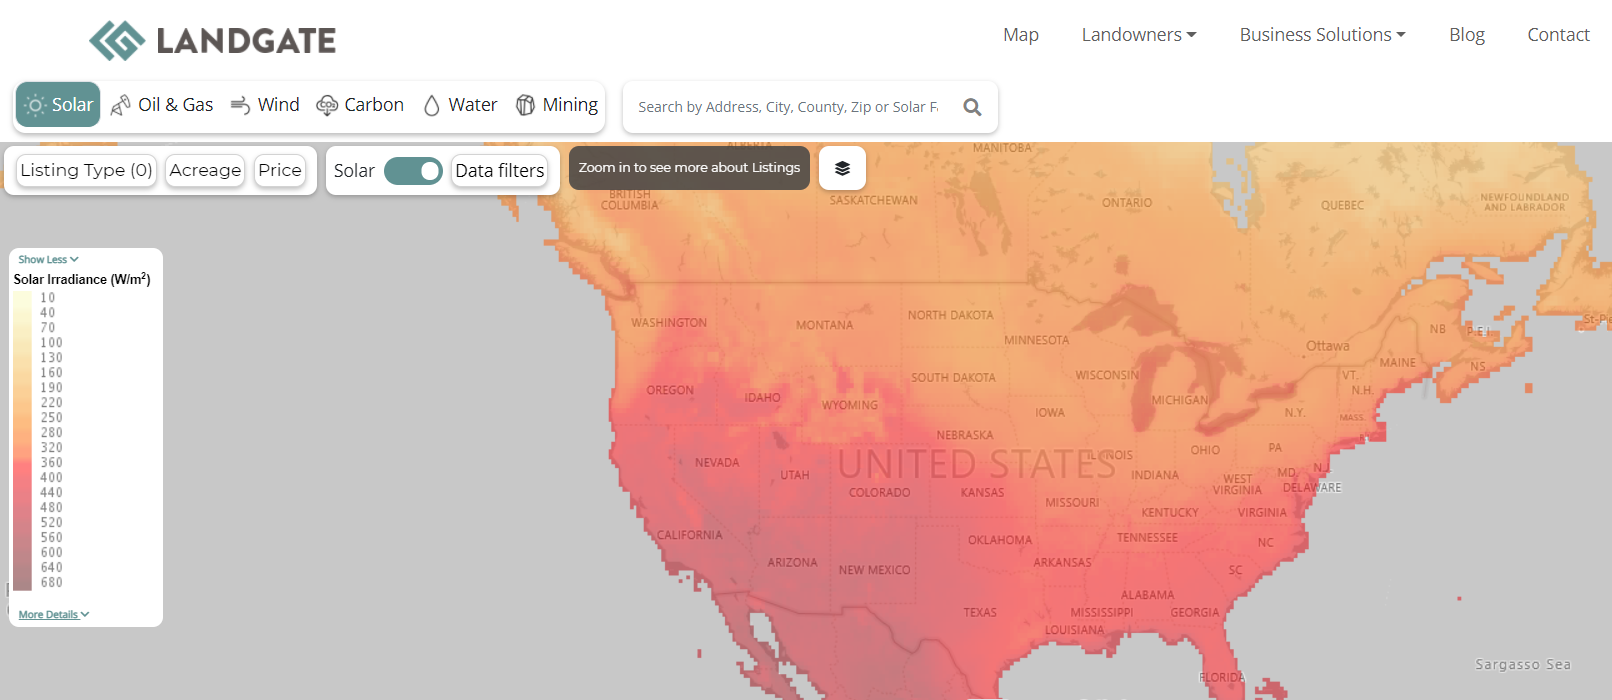 Solar Irradiance of the US from LandGate's map.